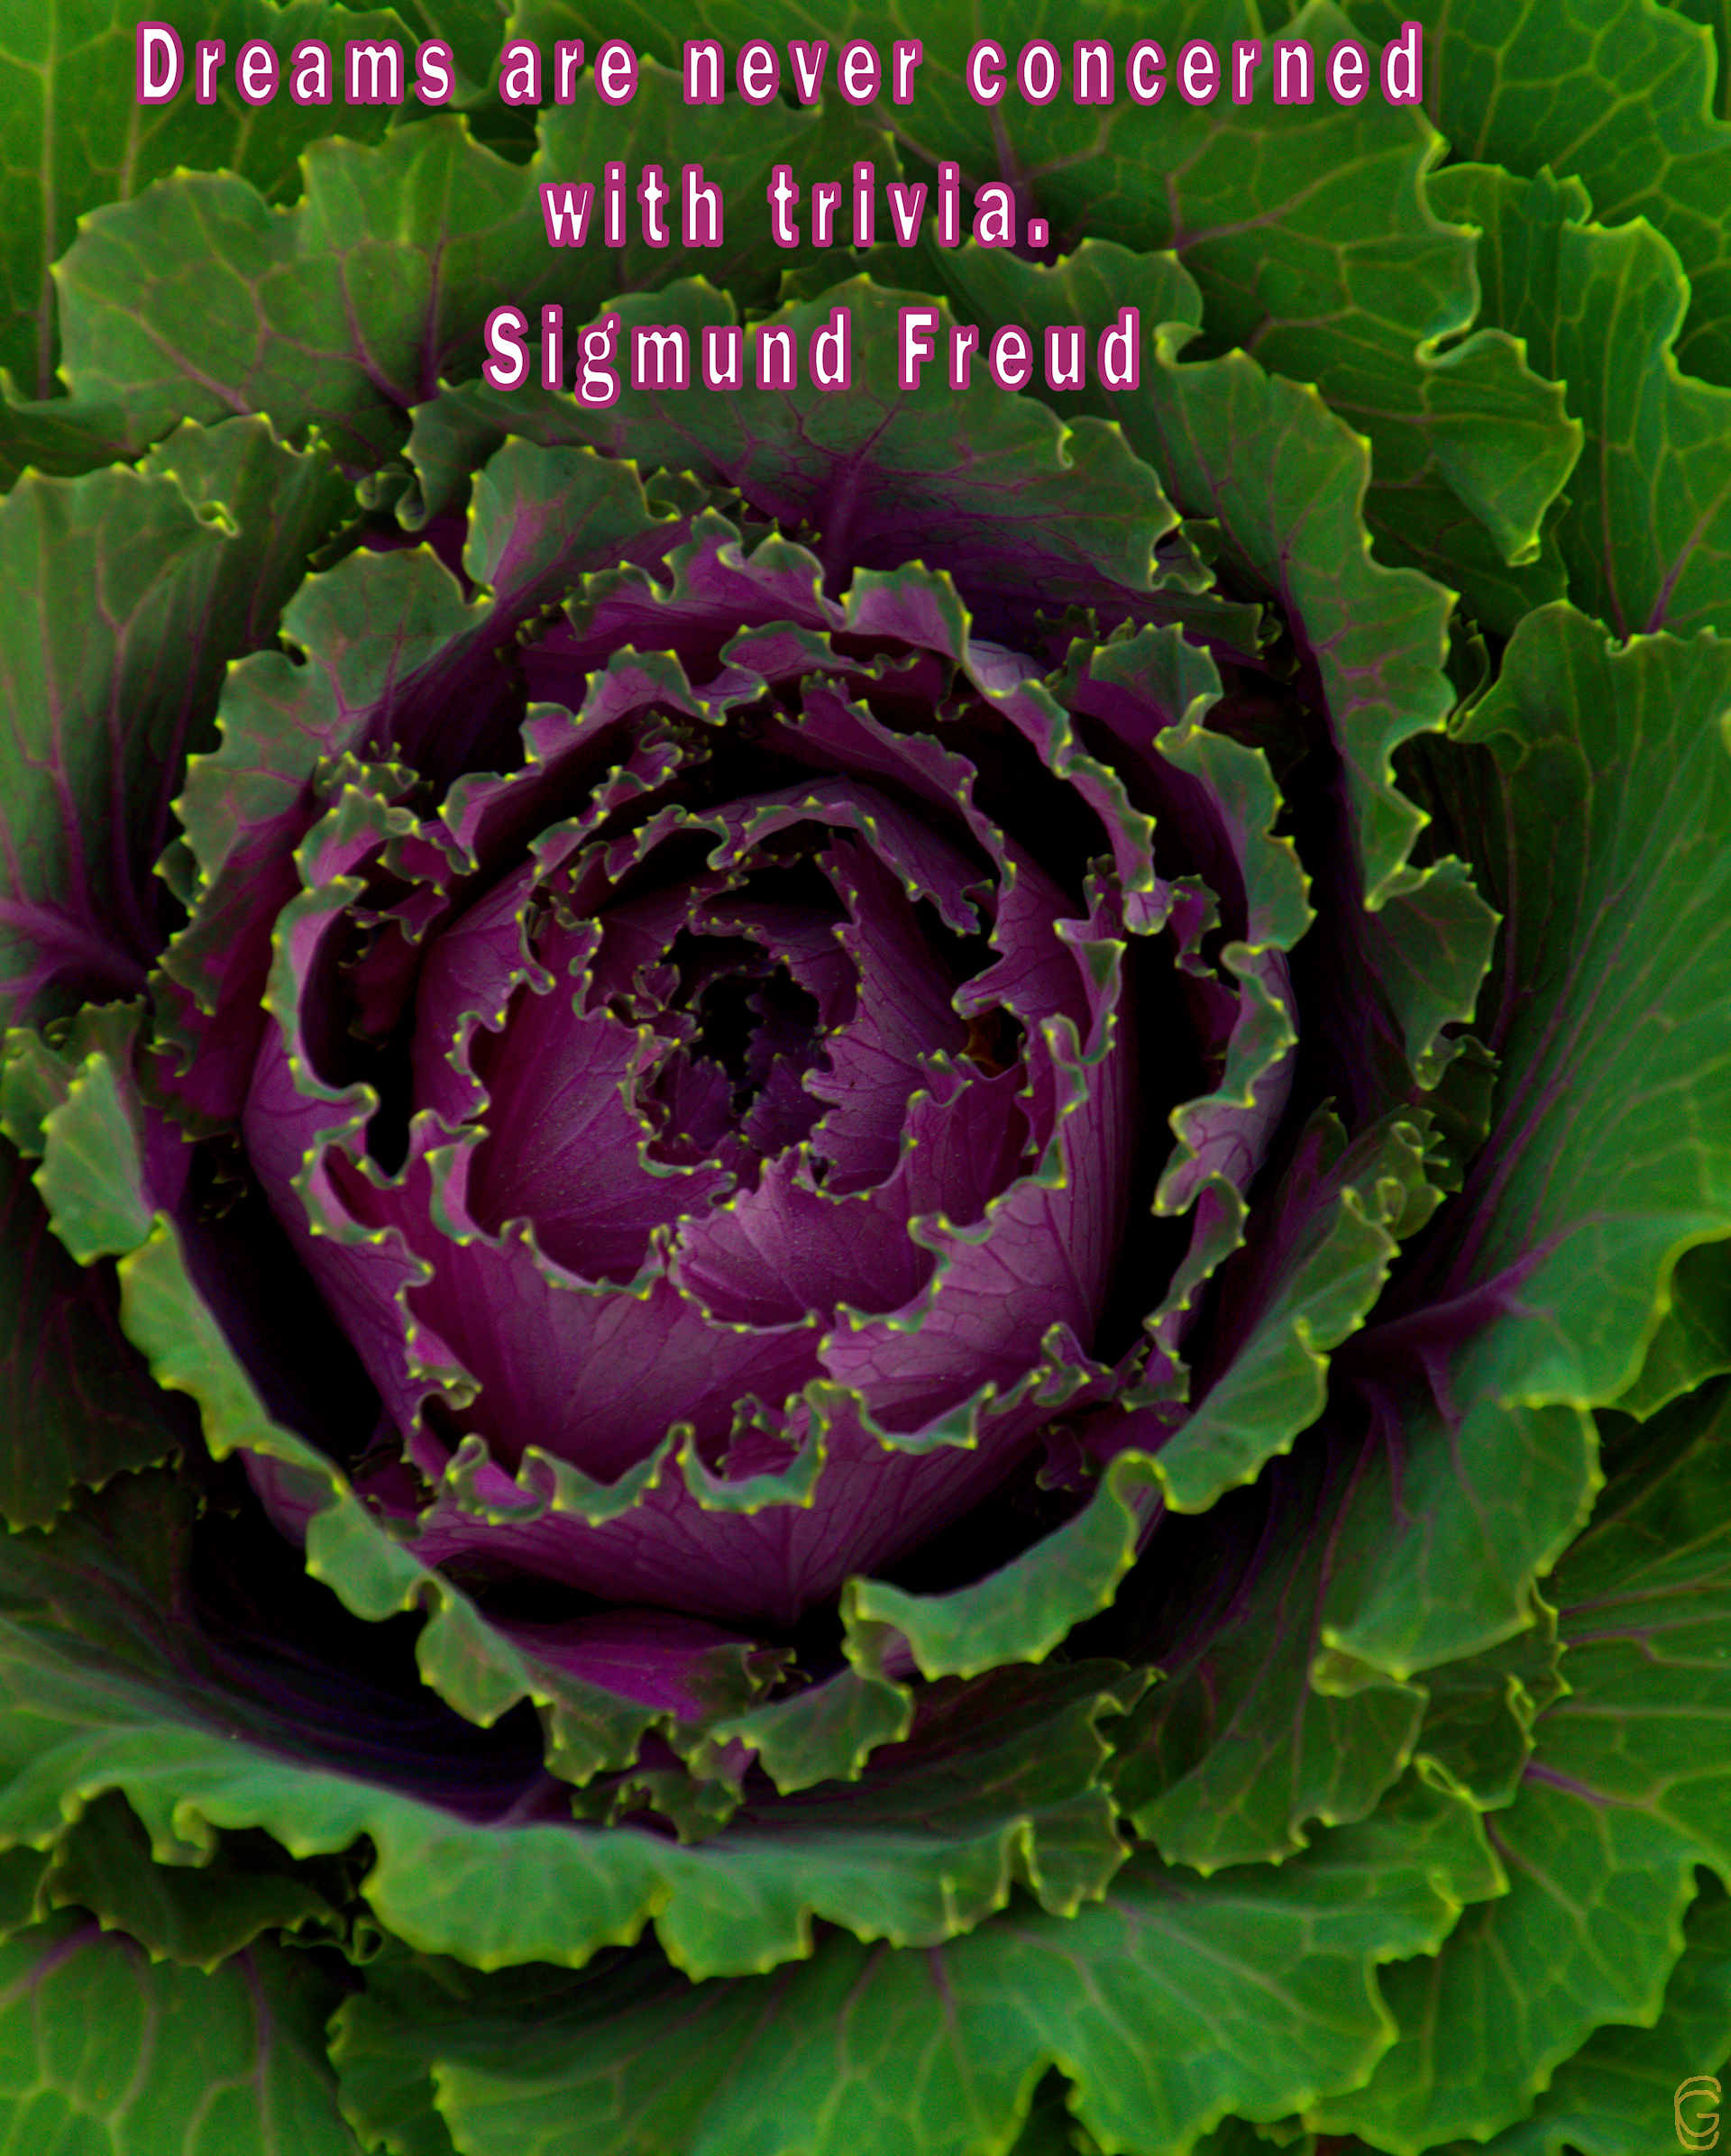 From Sigmund Freud quotes - Week of Apr. 22nd to Apr. 26th